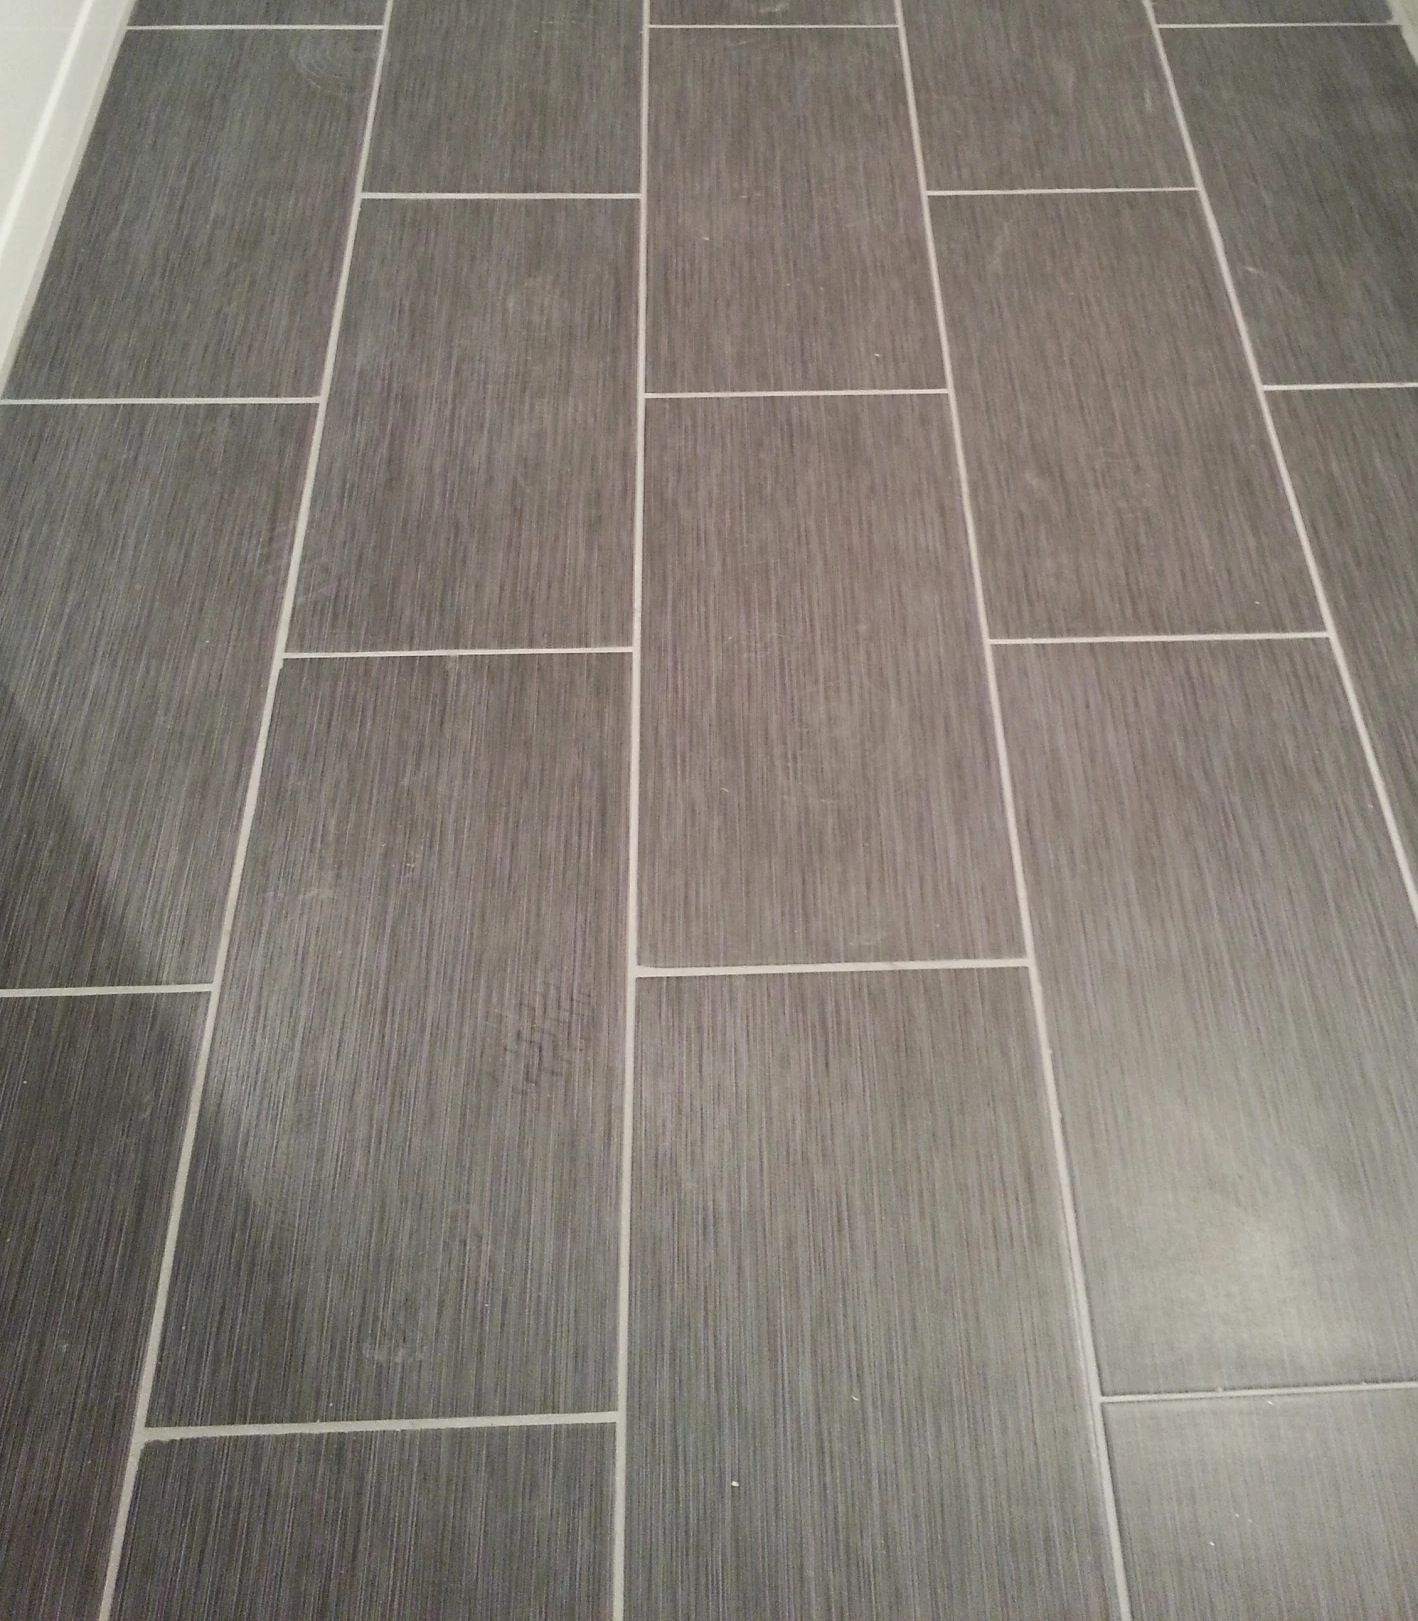 Home Depot Metro Gris 12x24 Tile In My Bathroom Home Depot Bathroom Tile Home Depot Bathroom Best Bathroom Flooring